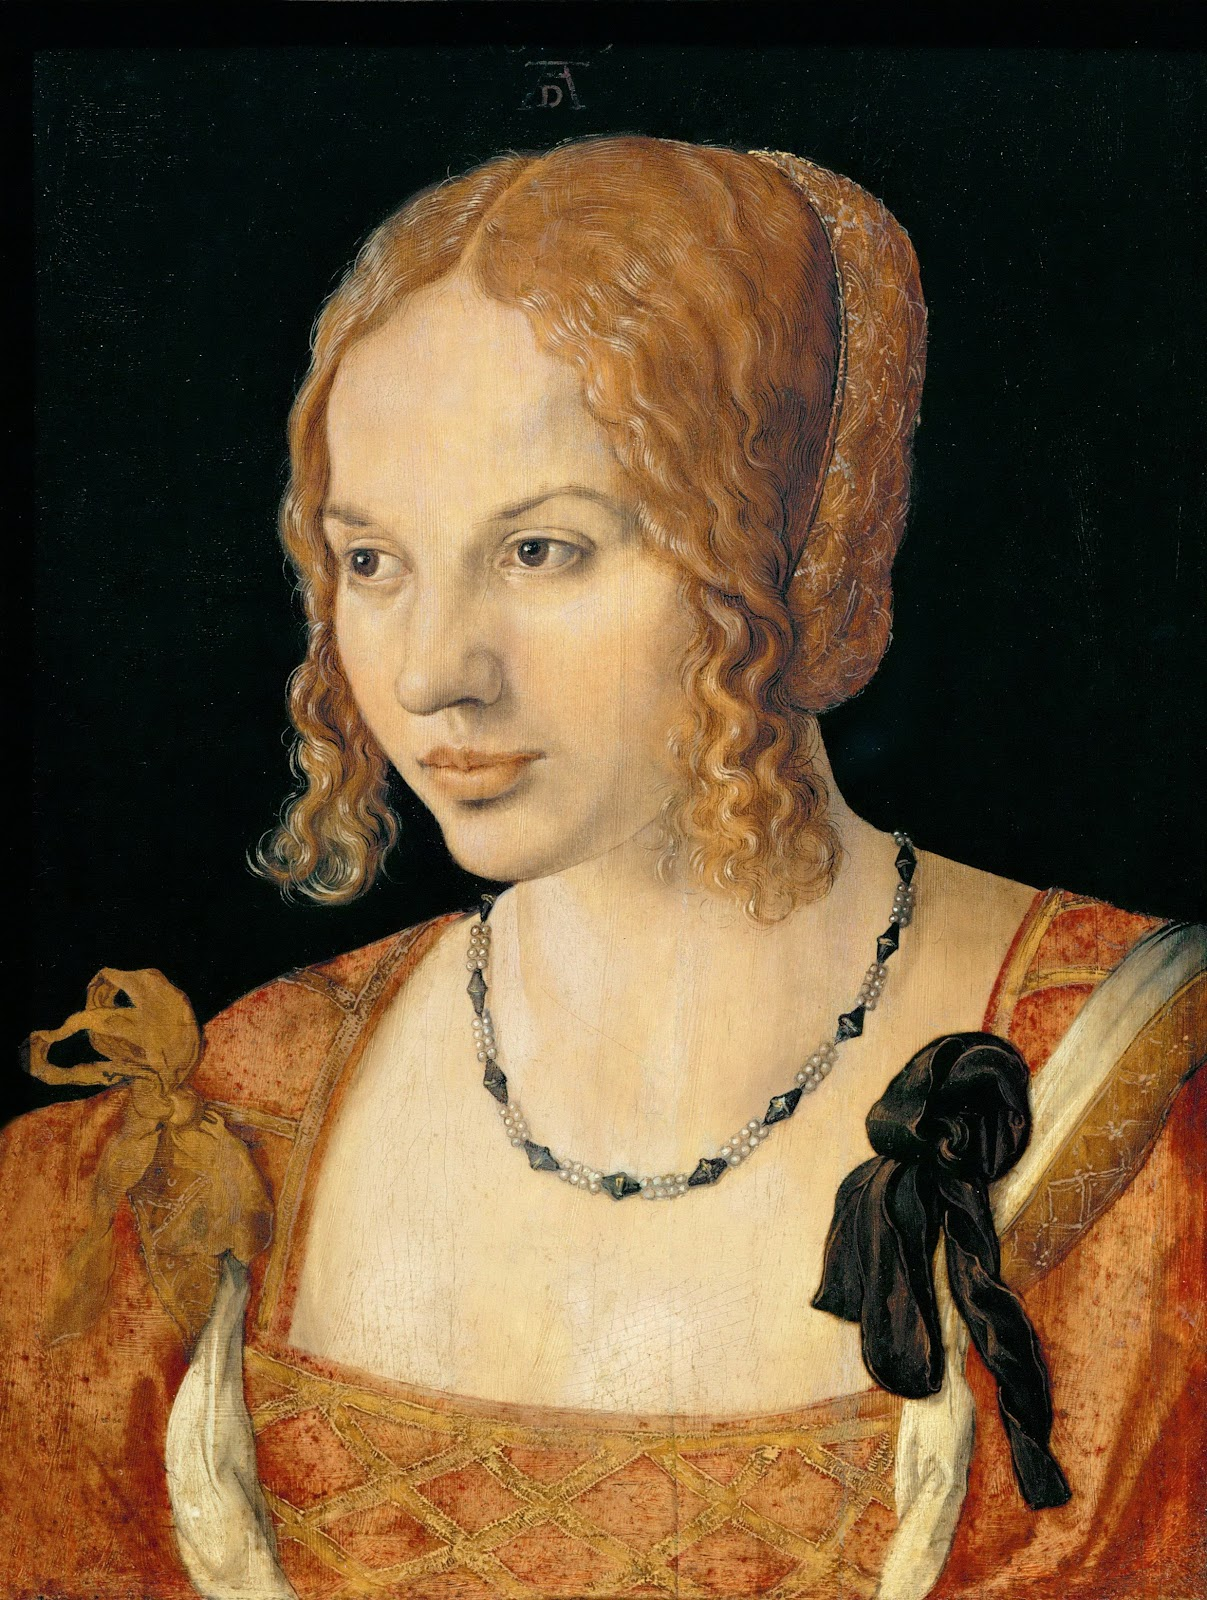 Albrecht_Dürer portait of venetian woman.jpg